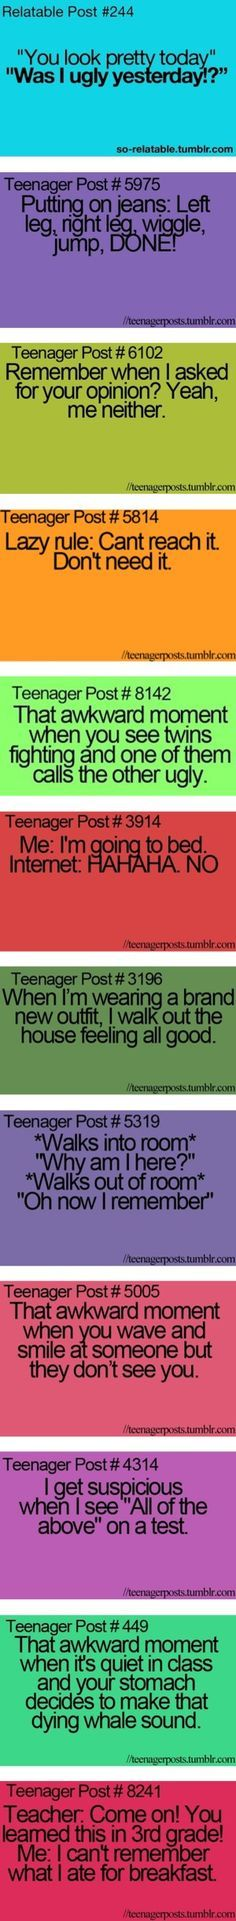 Teenager Posts by the-puppeteer-patient-120402 on Polyvore featuring quotes, teenager posts, words, teenage posts, teen posts, text, fillers, saying, phrase and funny